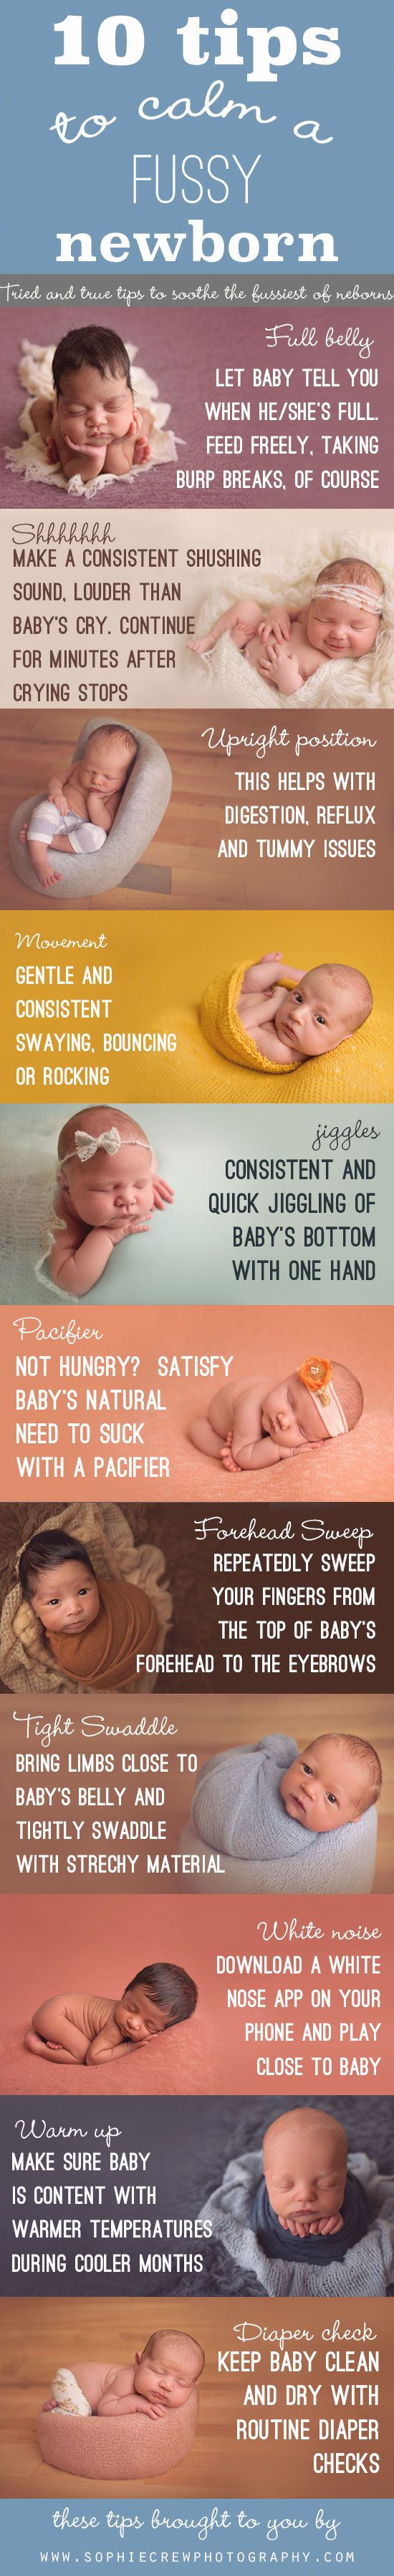 10 Tips to Calm a Fussy Newborn Infographic, Ways to soothe a cranky baby, first time mom tips.